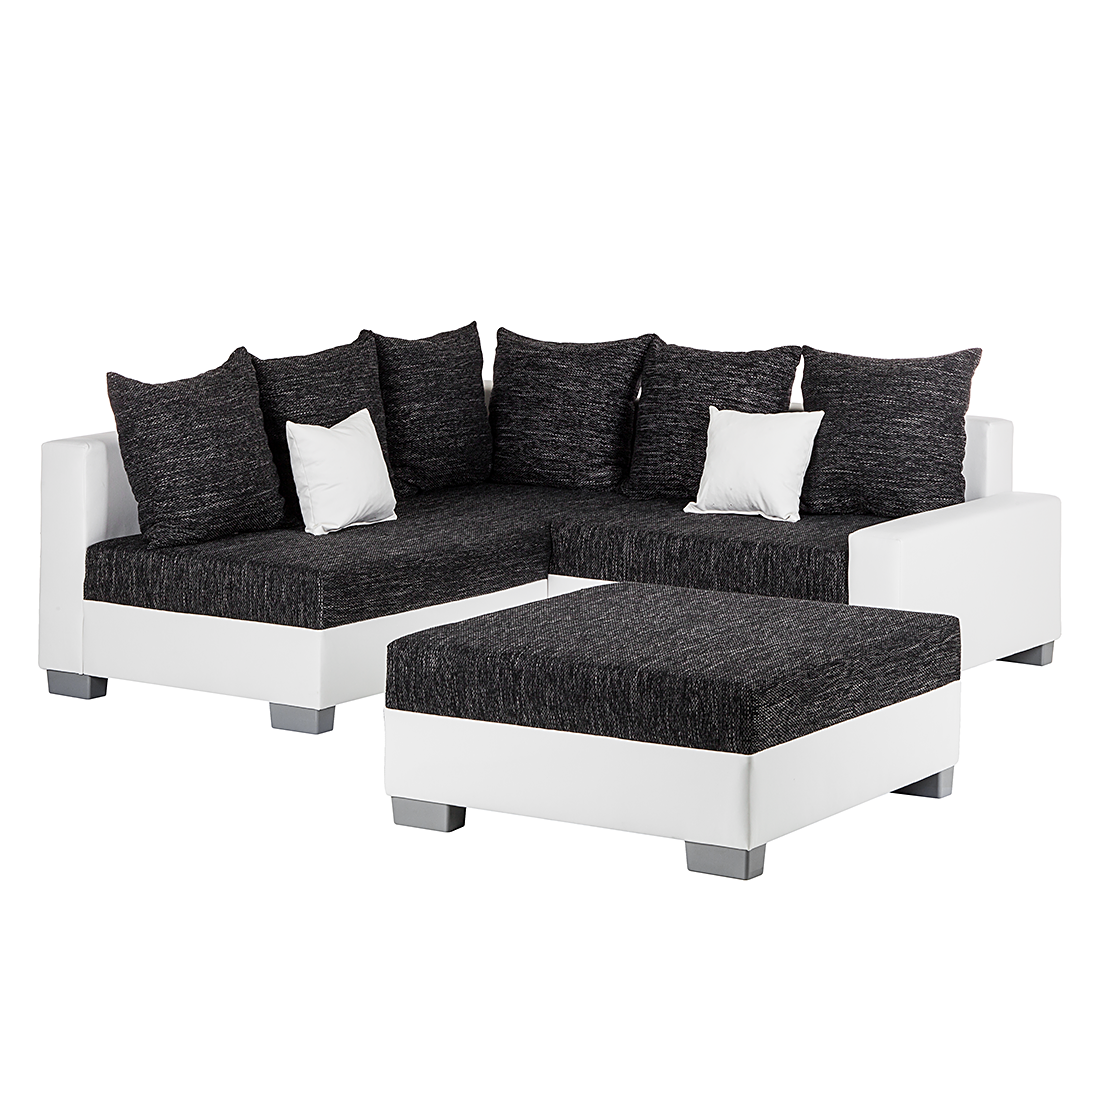 ecksofa mit hocker schlaffunktion inspirierendes design f r wohnm bel. Black Bedroom Furniture Sets. Home Design Ideas